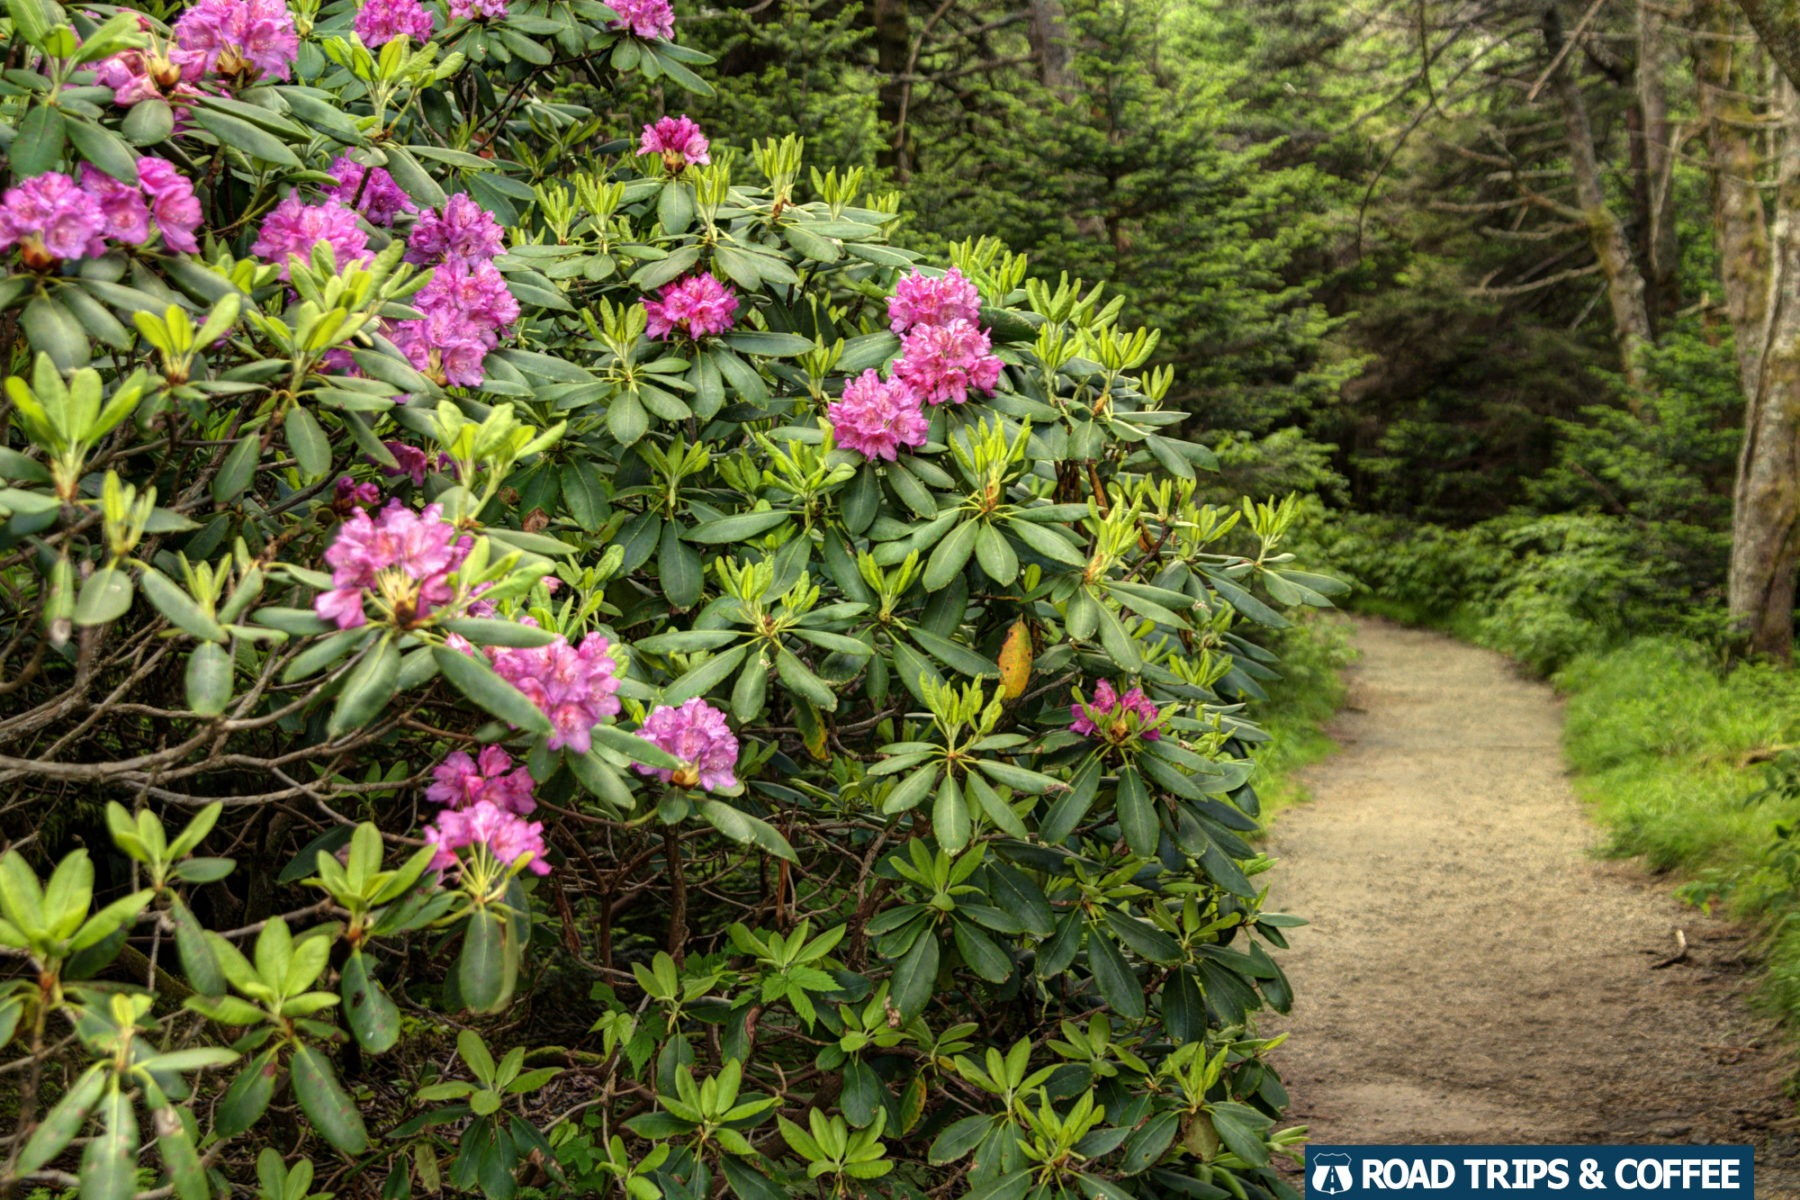 Bright pink bloom of a catawba rhododendron along the trail leading through the Rhododendron Garden on Roan Mountain in Tennessee